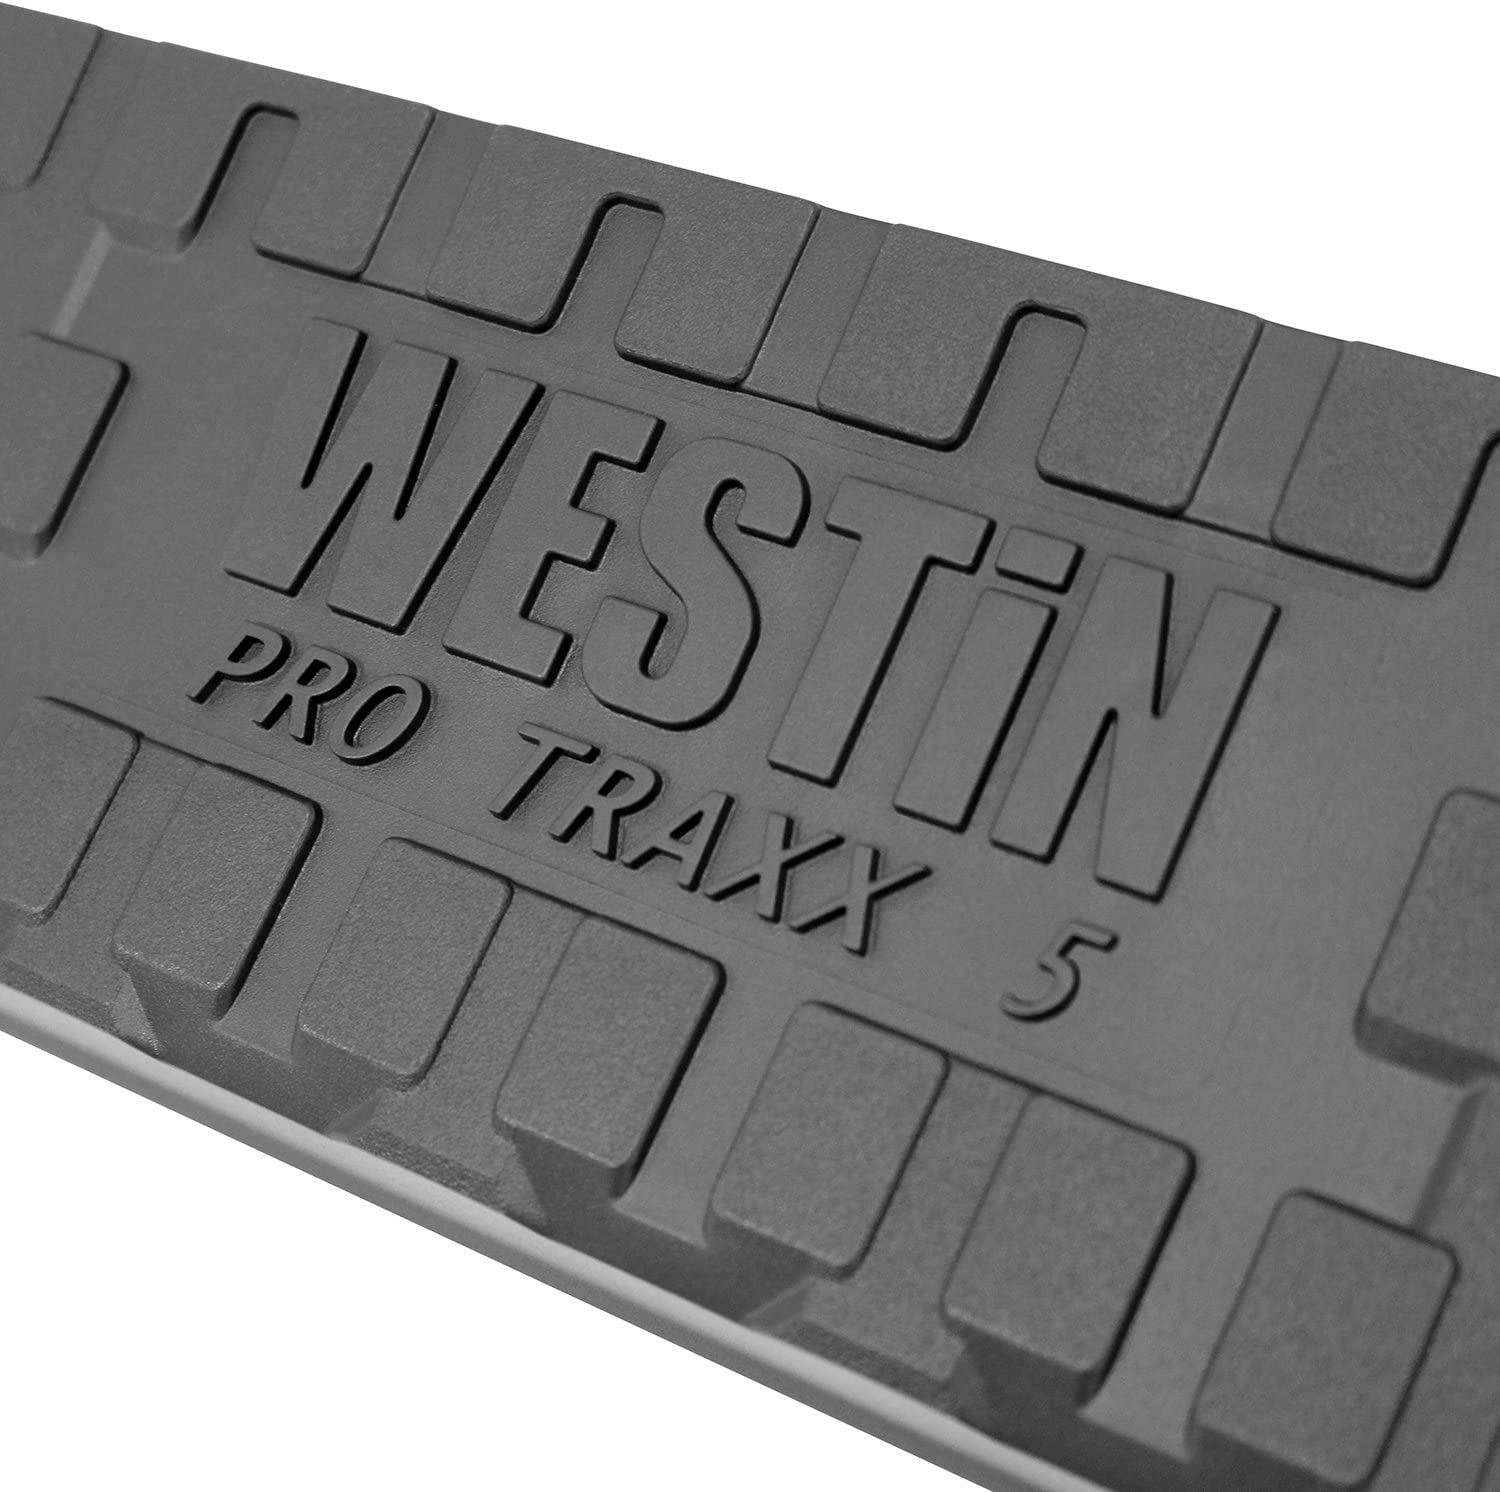 Westin 21-53835 Black Pro Traxx Max 66% OFF Bar Step New product! New type 5 Oval